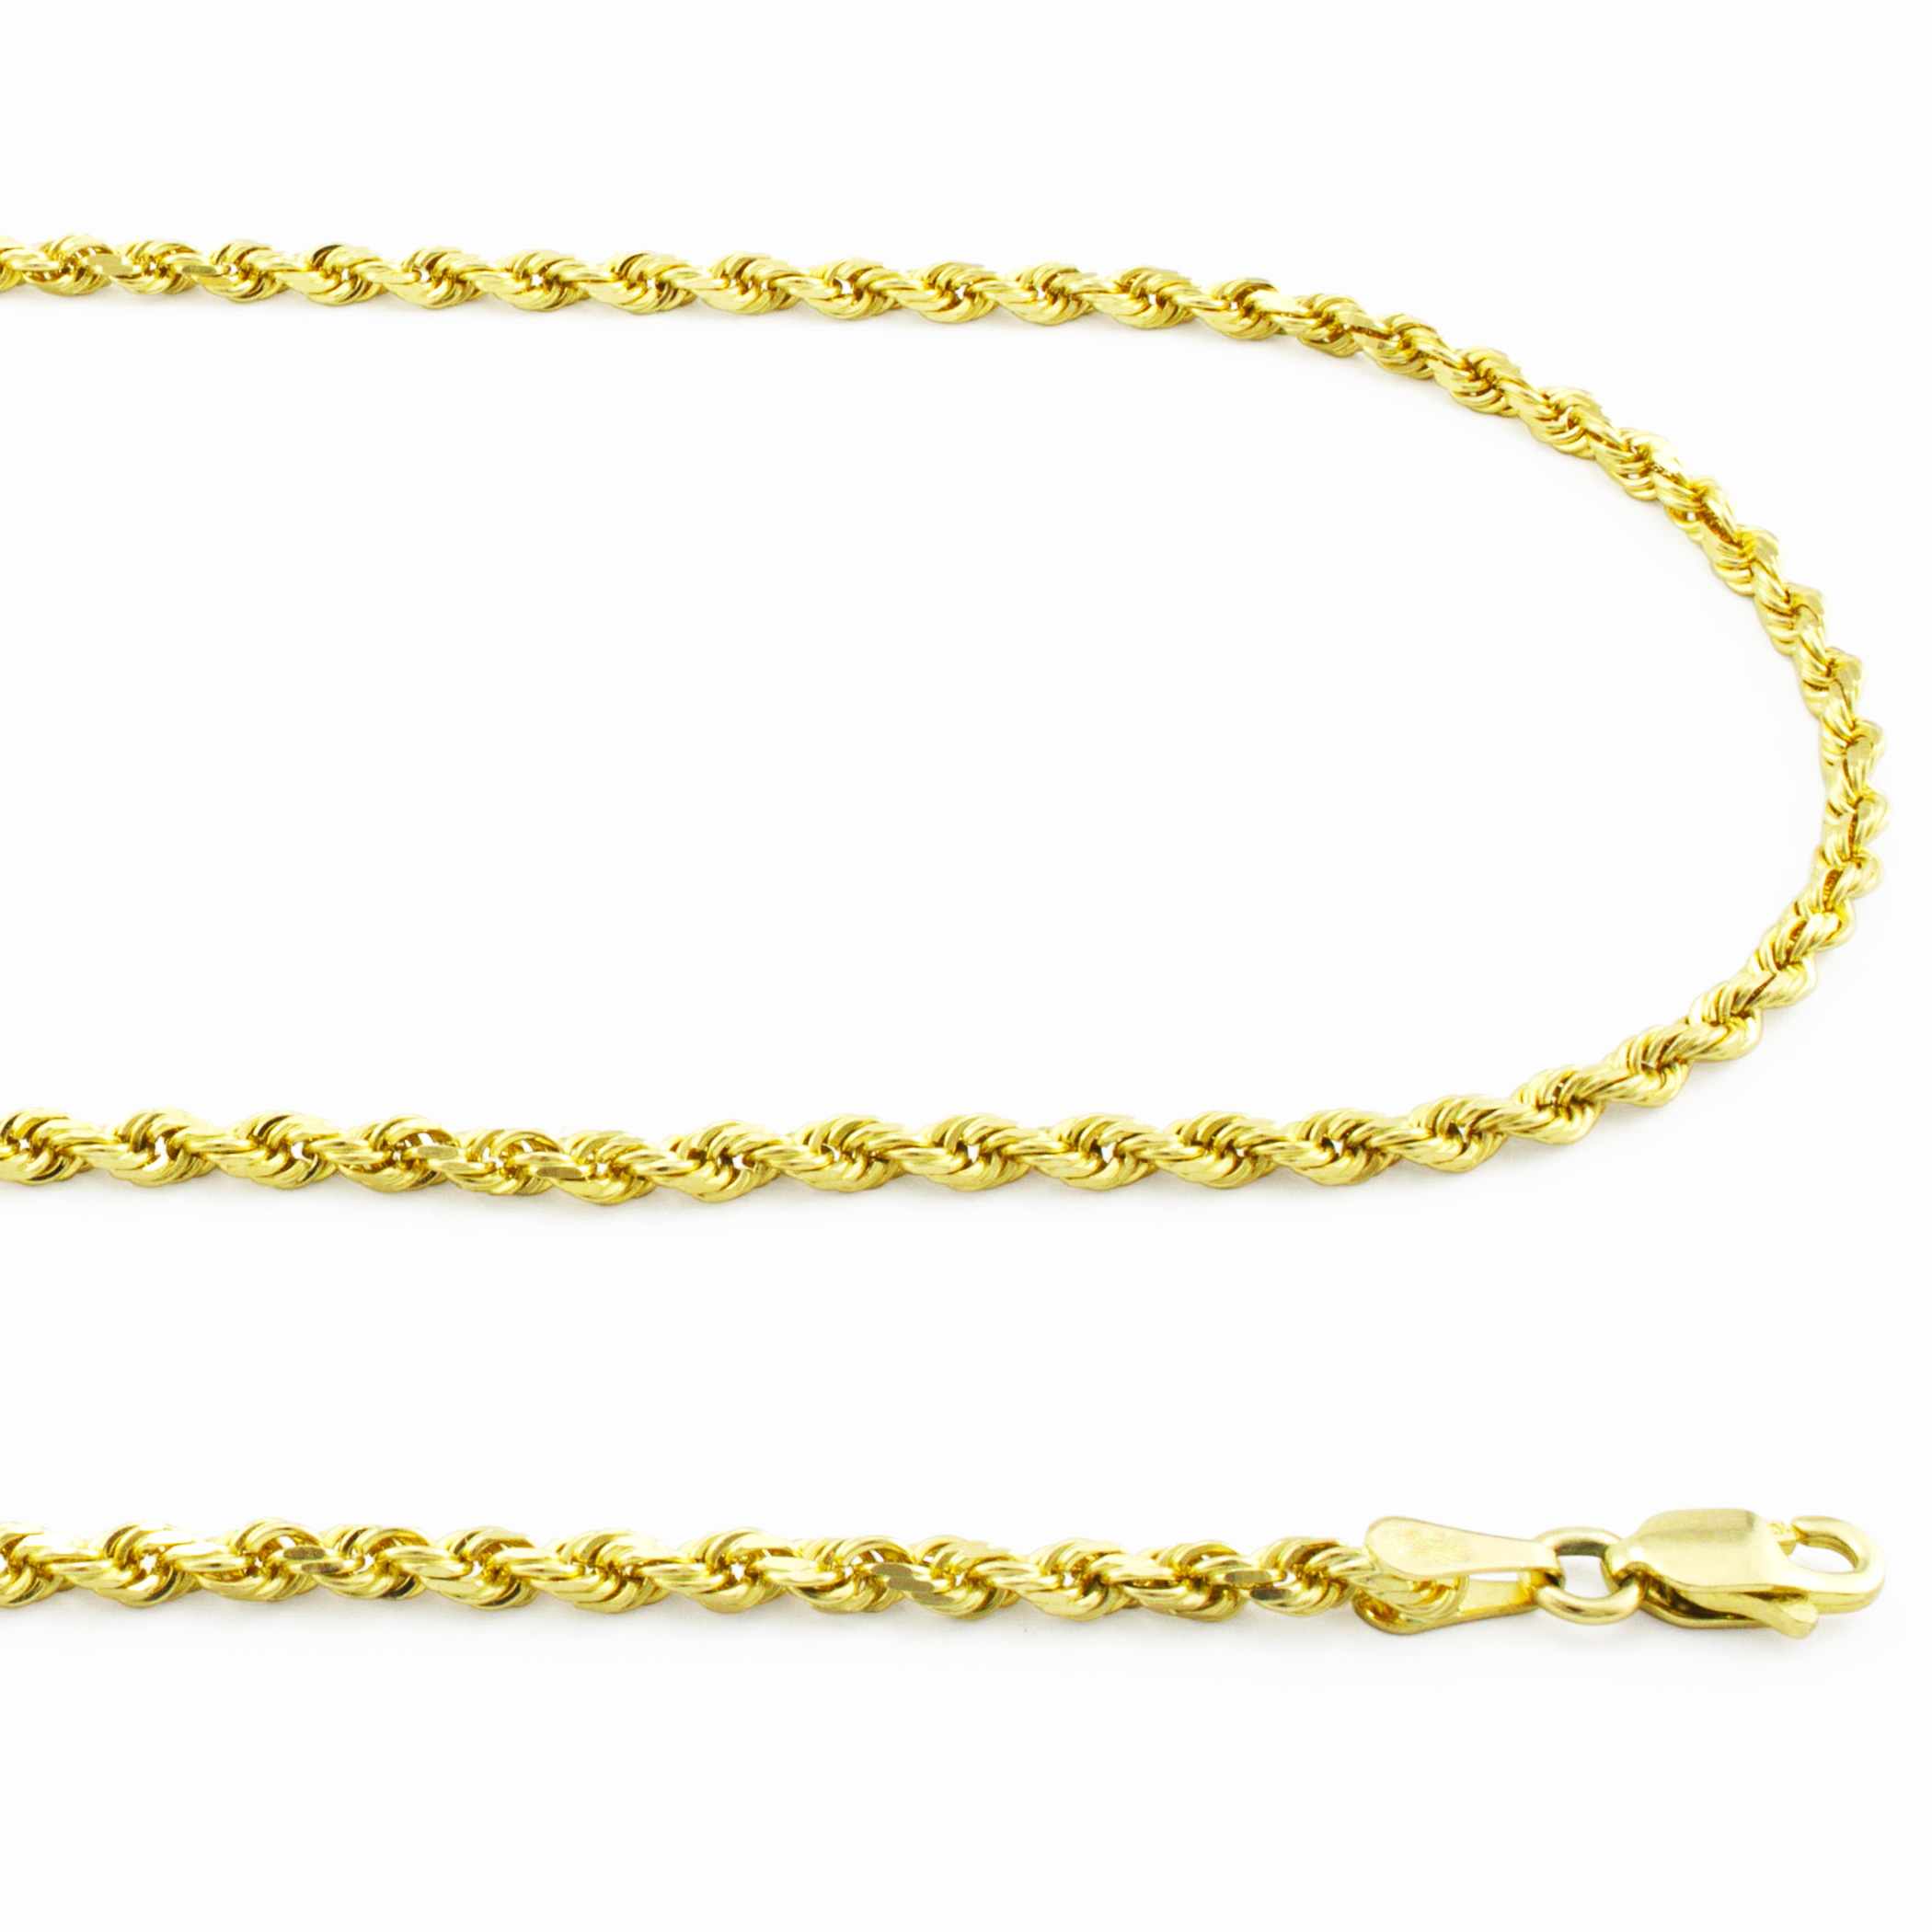 Solid-14K-Yellow-Gold-2-5mm-Mens-Women-Diamond-Cut-Rope-Chain-Necklace-16-034-30-034 thumbnail 19